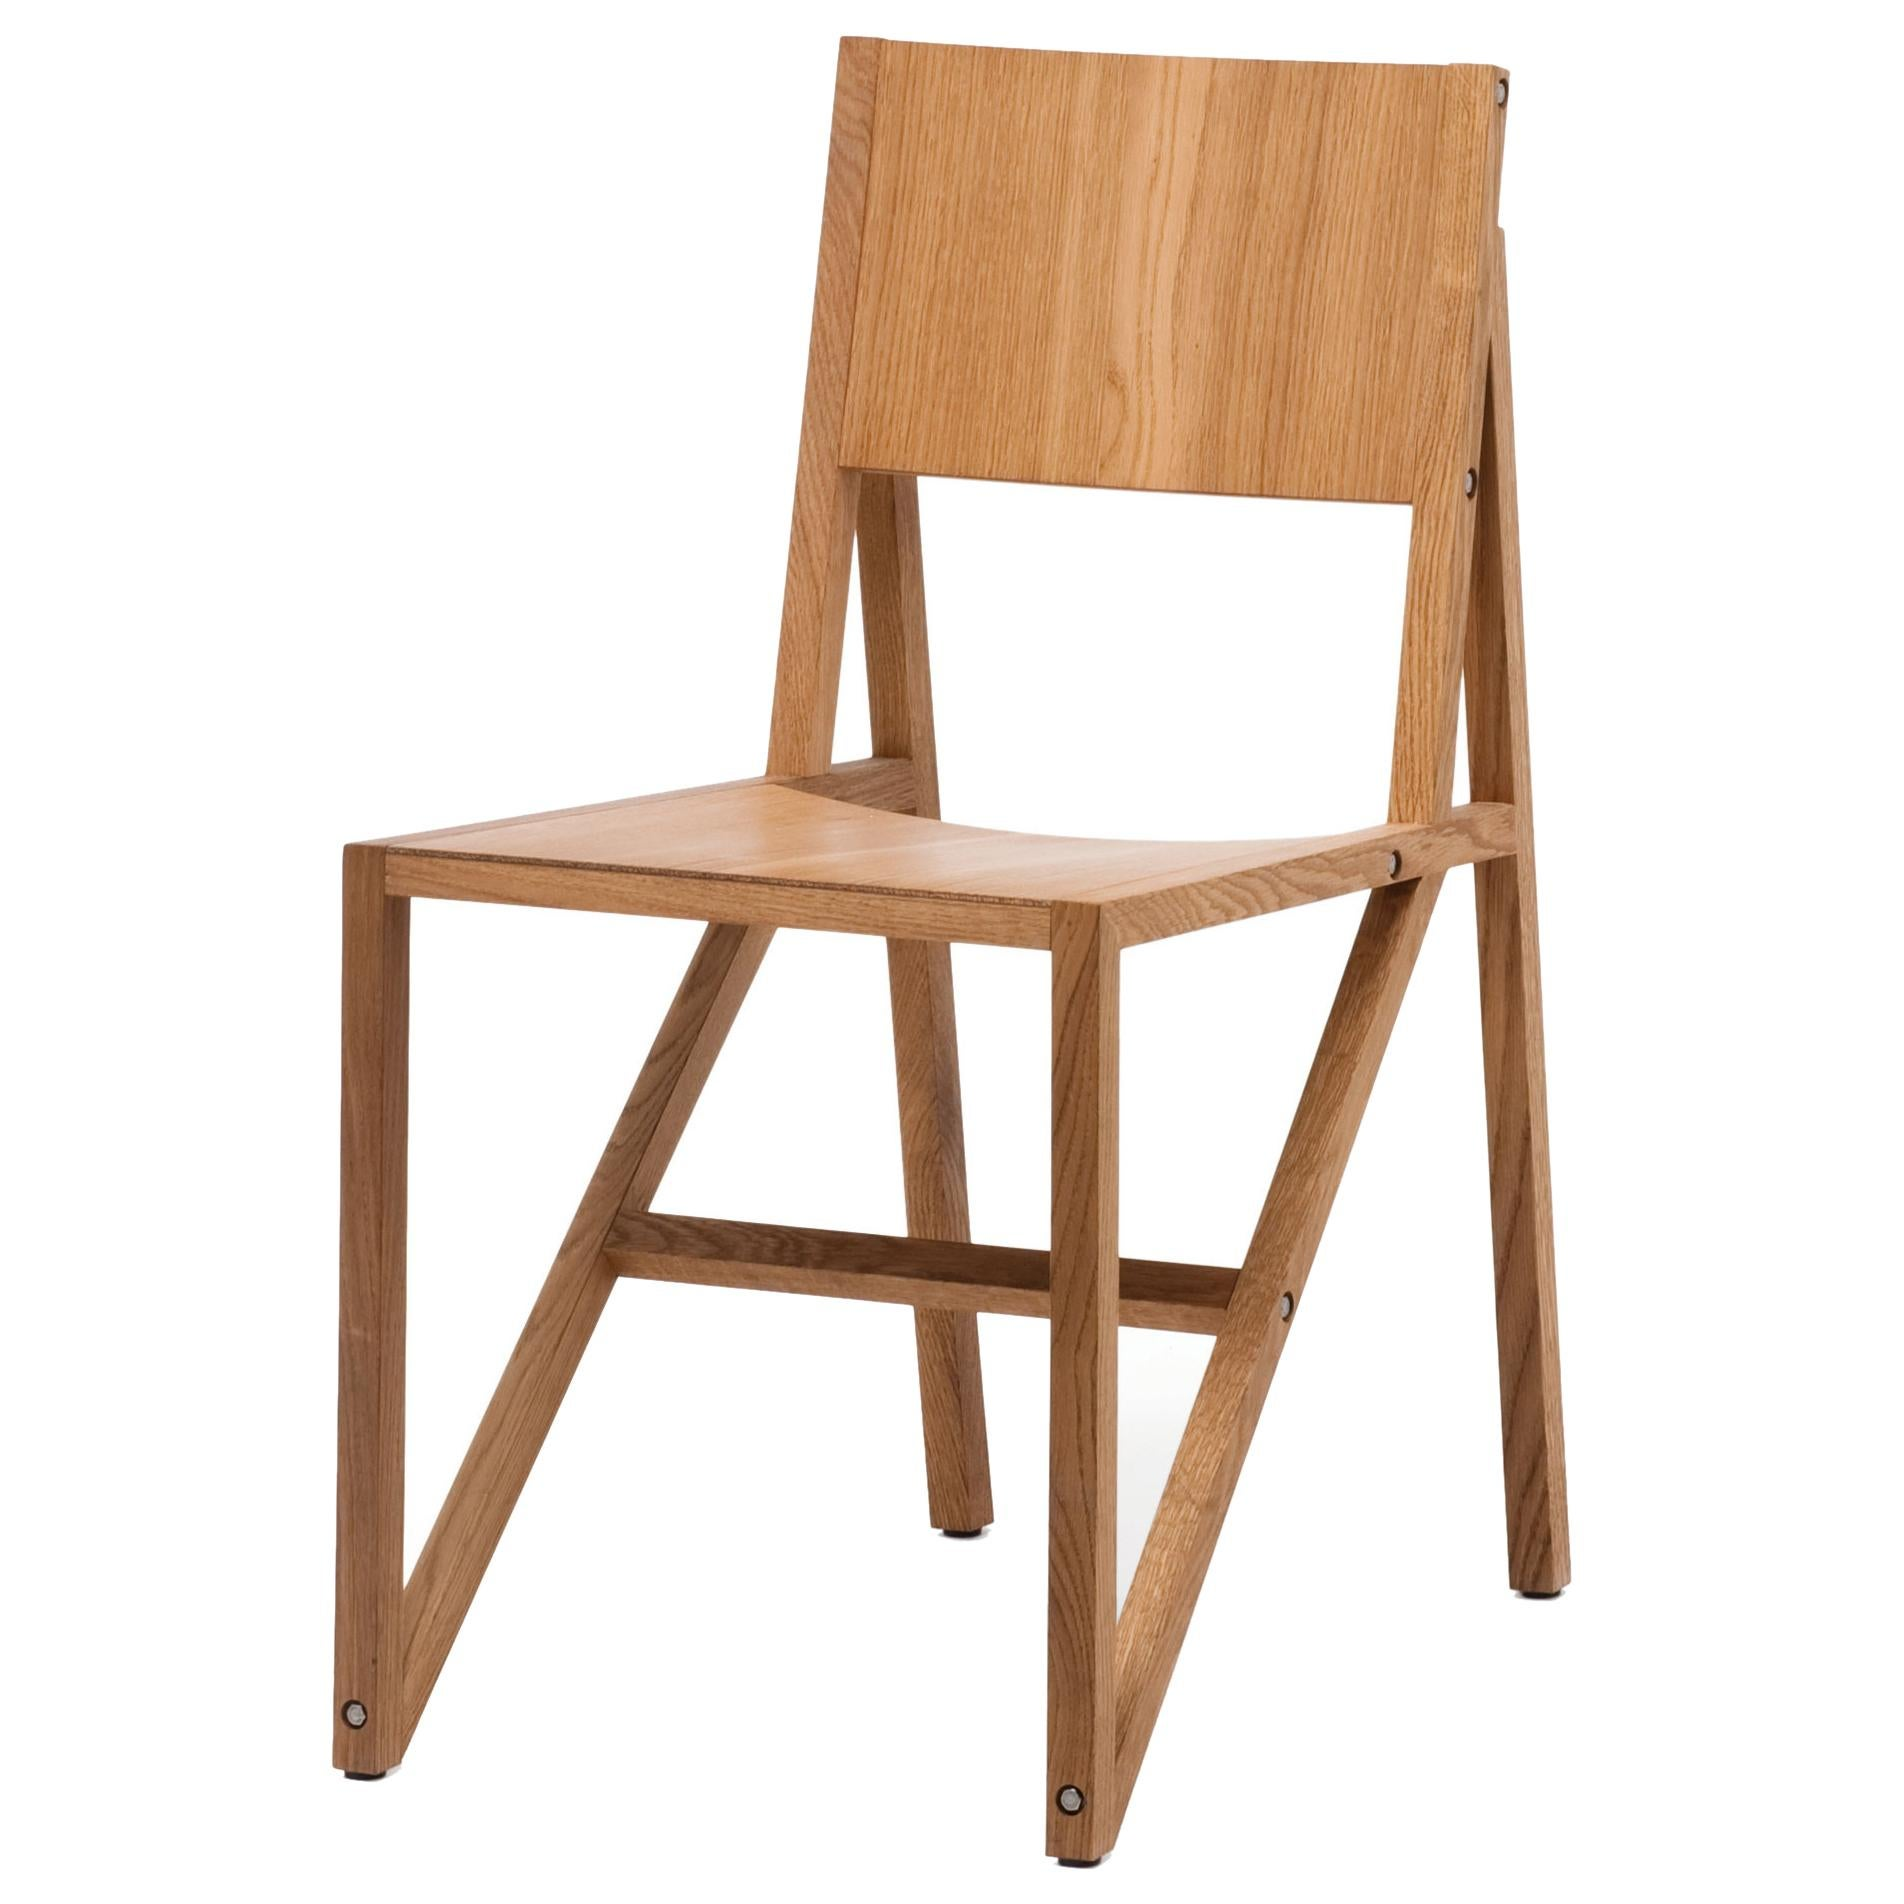 Established & Sons Single Frame Chair by Wouter Scheublin